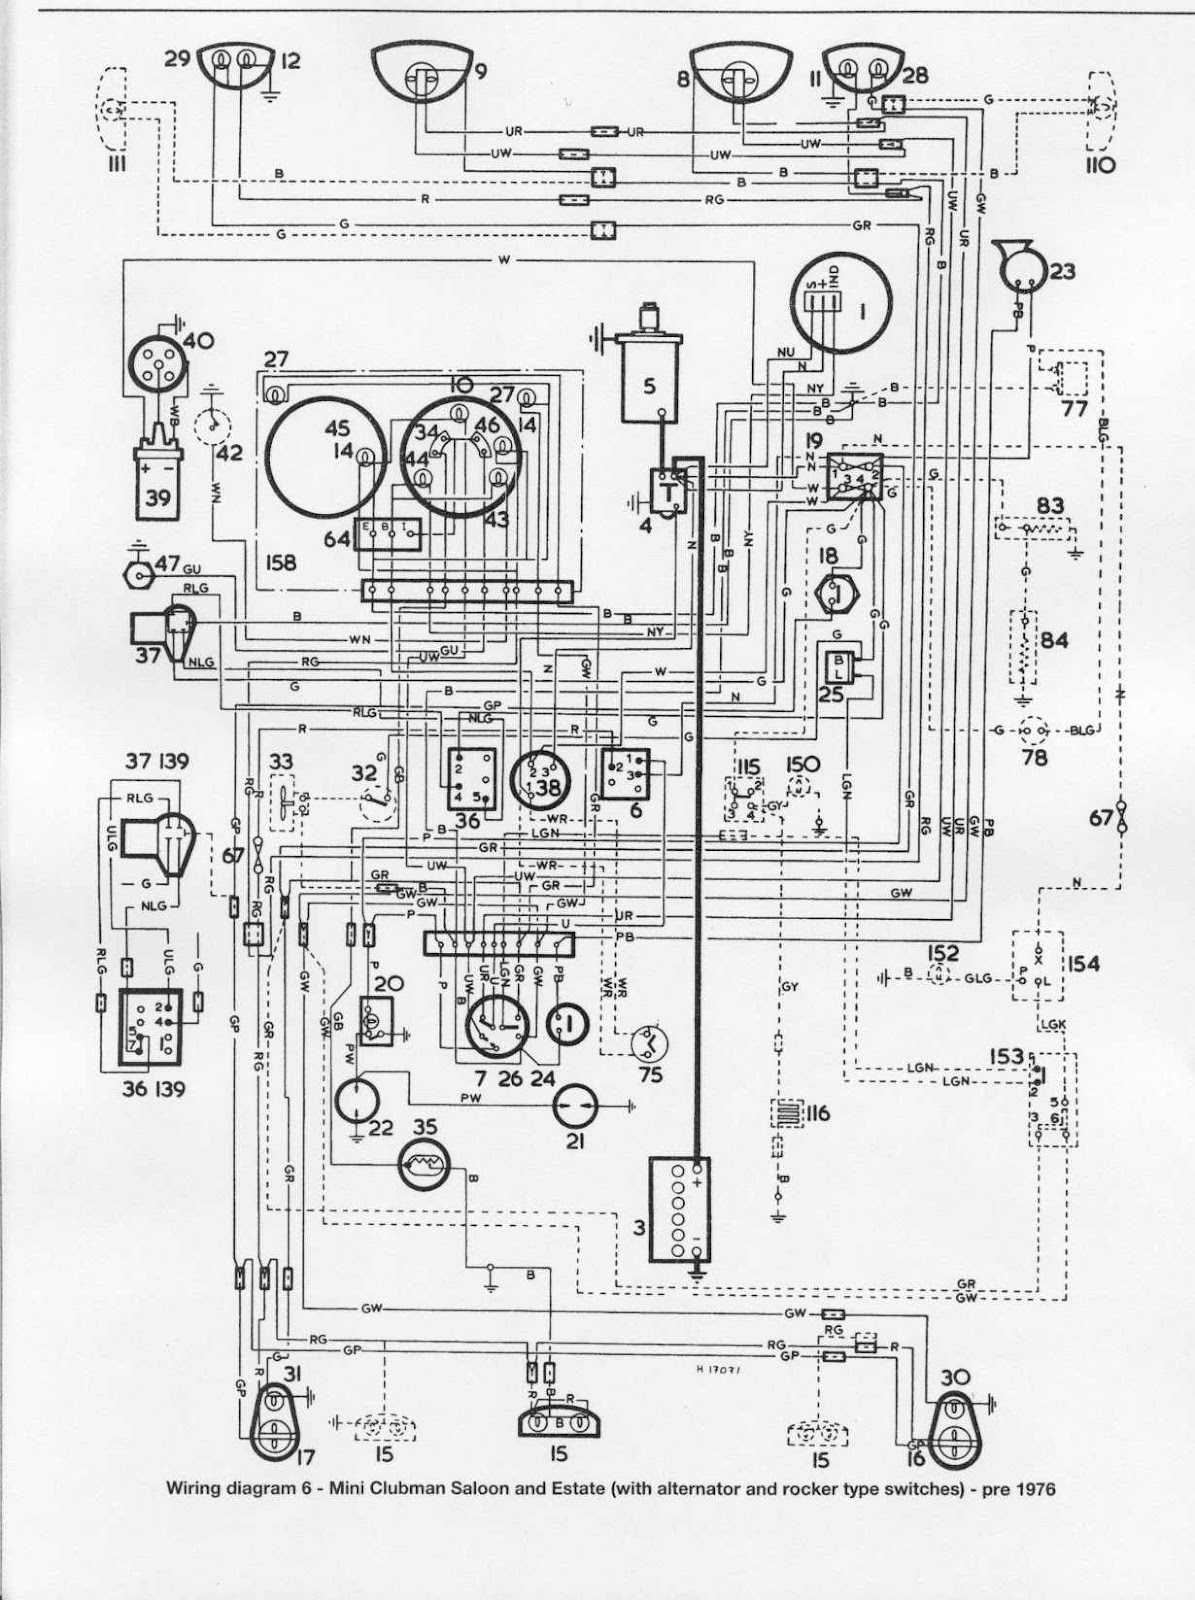 vista key wiring diagram mini clubman saloon and estate 1976 electrical wiring ...